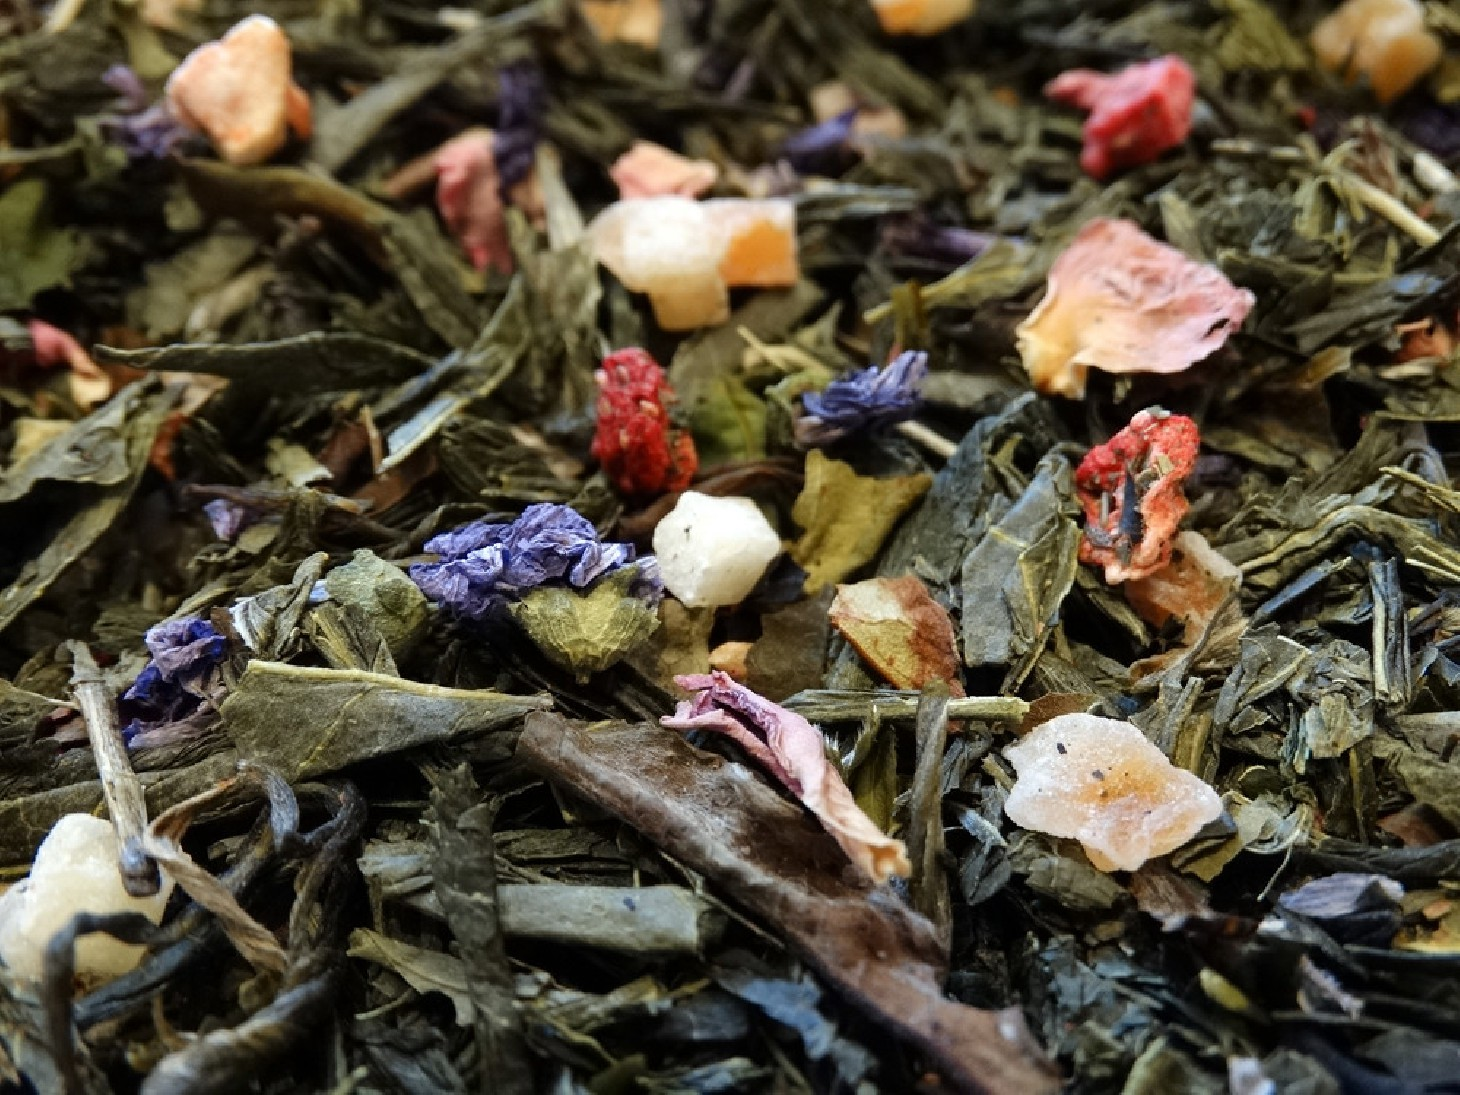 Green & White tea, papaya, lemon, raspberry, pineapple, strawberry & petals